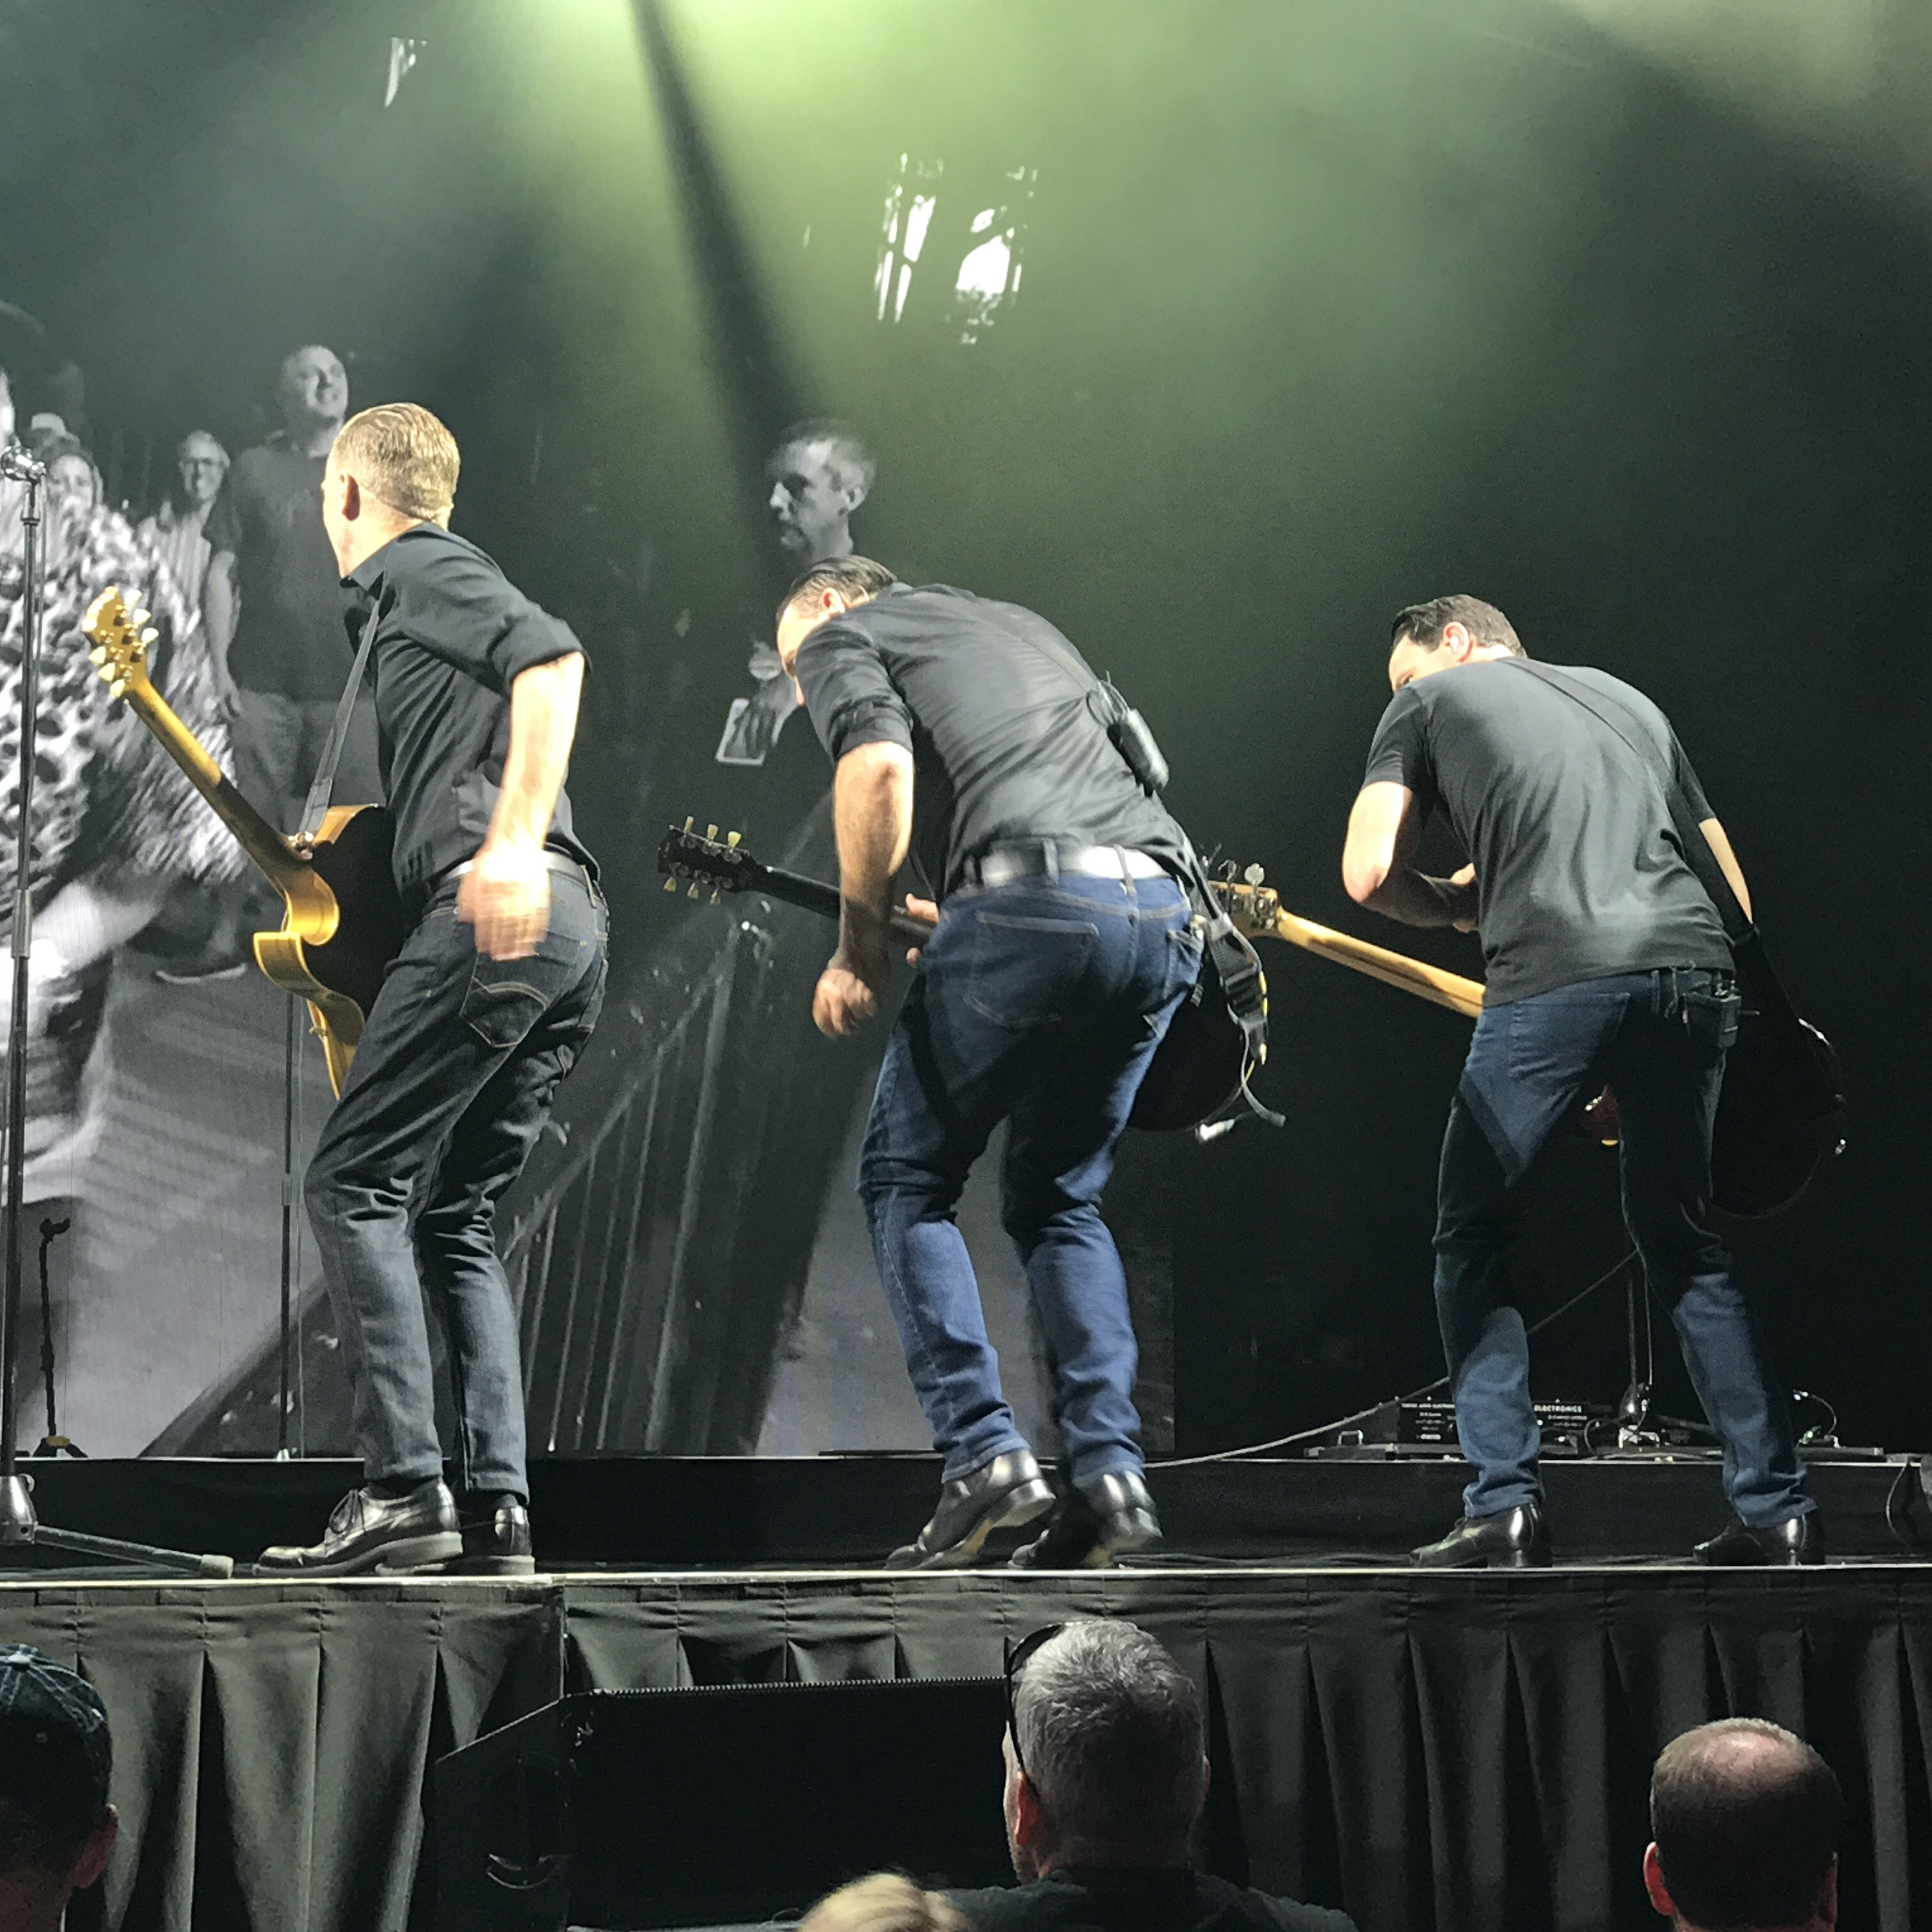 Bryan Adams with his guitarists, shaking their backsides on stage